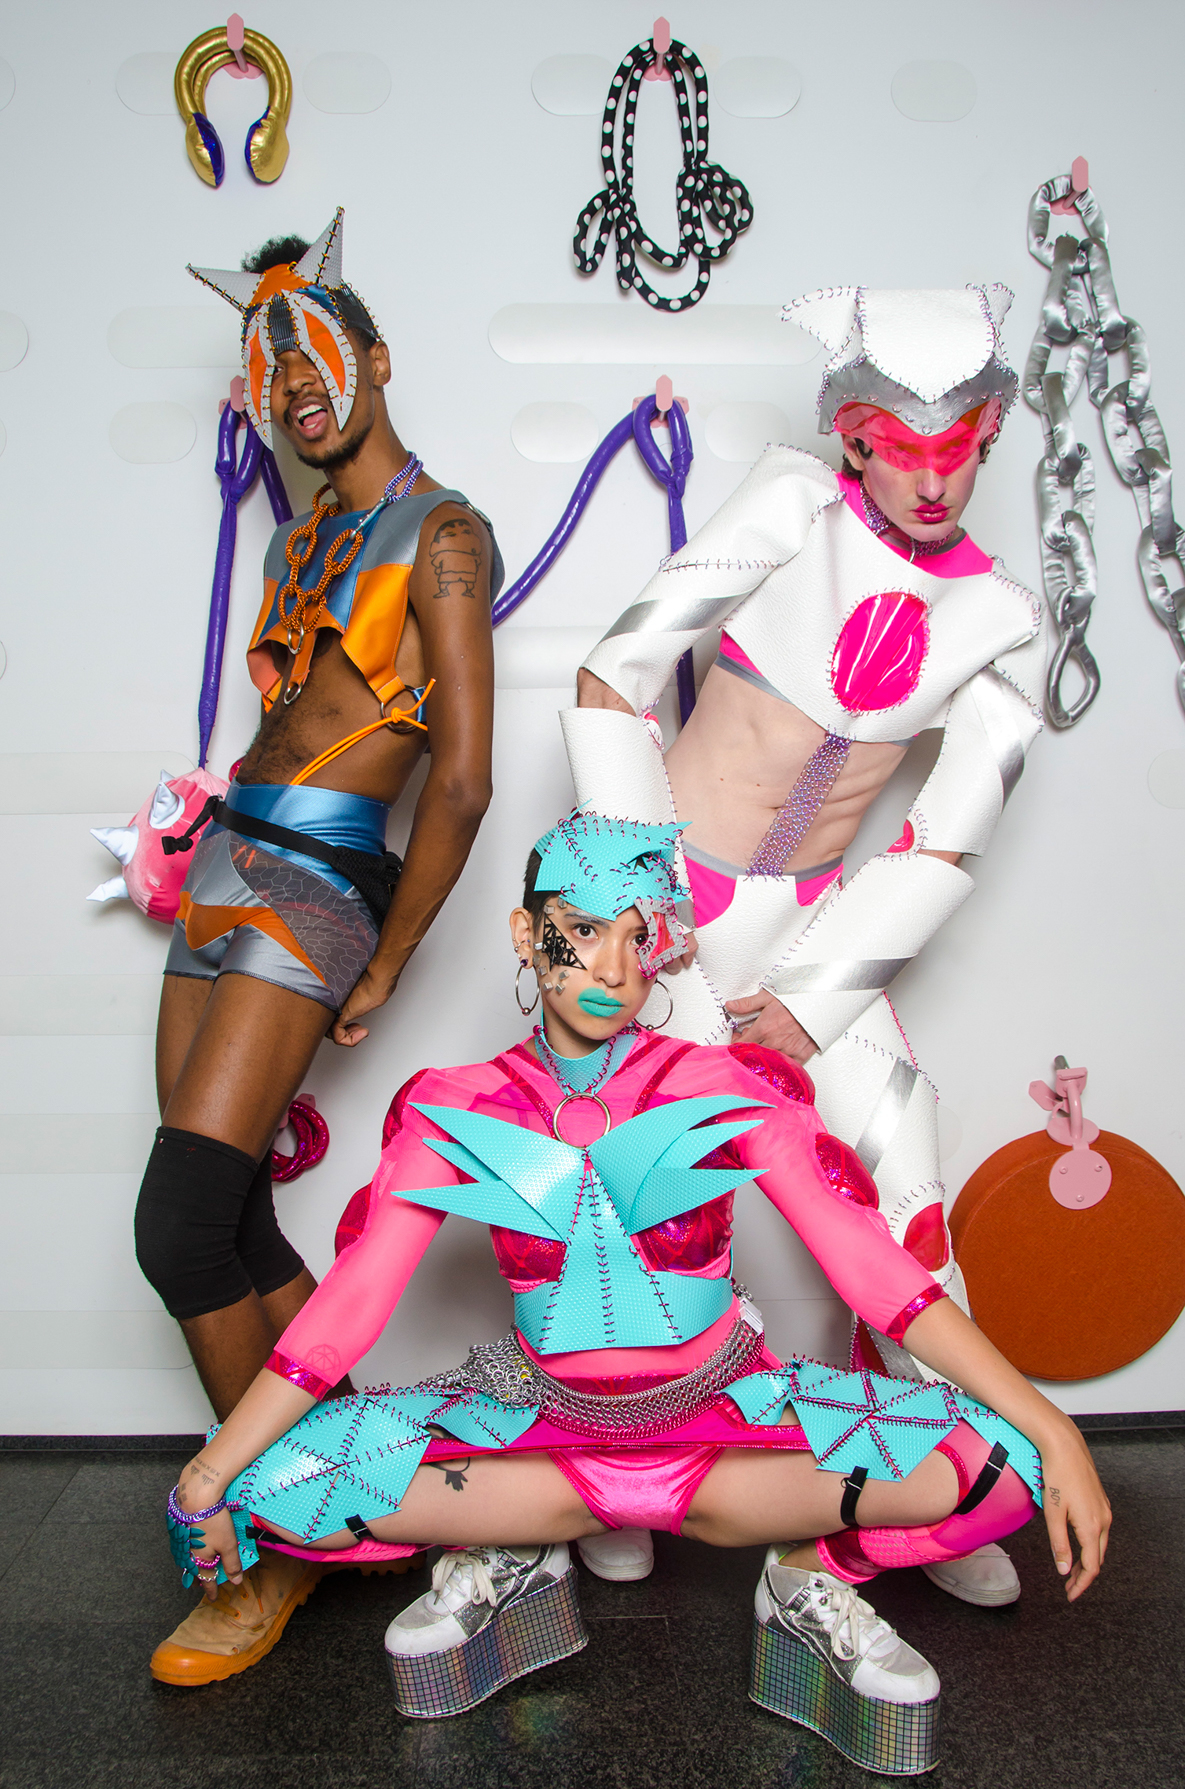 Photo by Colectivo Multipolar  3 NeuroQueers posed in a triangle, Compton is wearing grey, orange and blue vinyl crop top and shorts with large O rings that have orange rope attachments, a metamaille necklace and horned headpiece with spikey eyes! Vogds is wearing white with pink details vinyl outfit that is chainmailled together with a vinyl helmet that has cute ears! sky is wearing pink spandex muscle arms alien crop with aqua vinyl spikey crop top, headpiece and leg pieces!